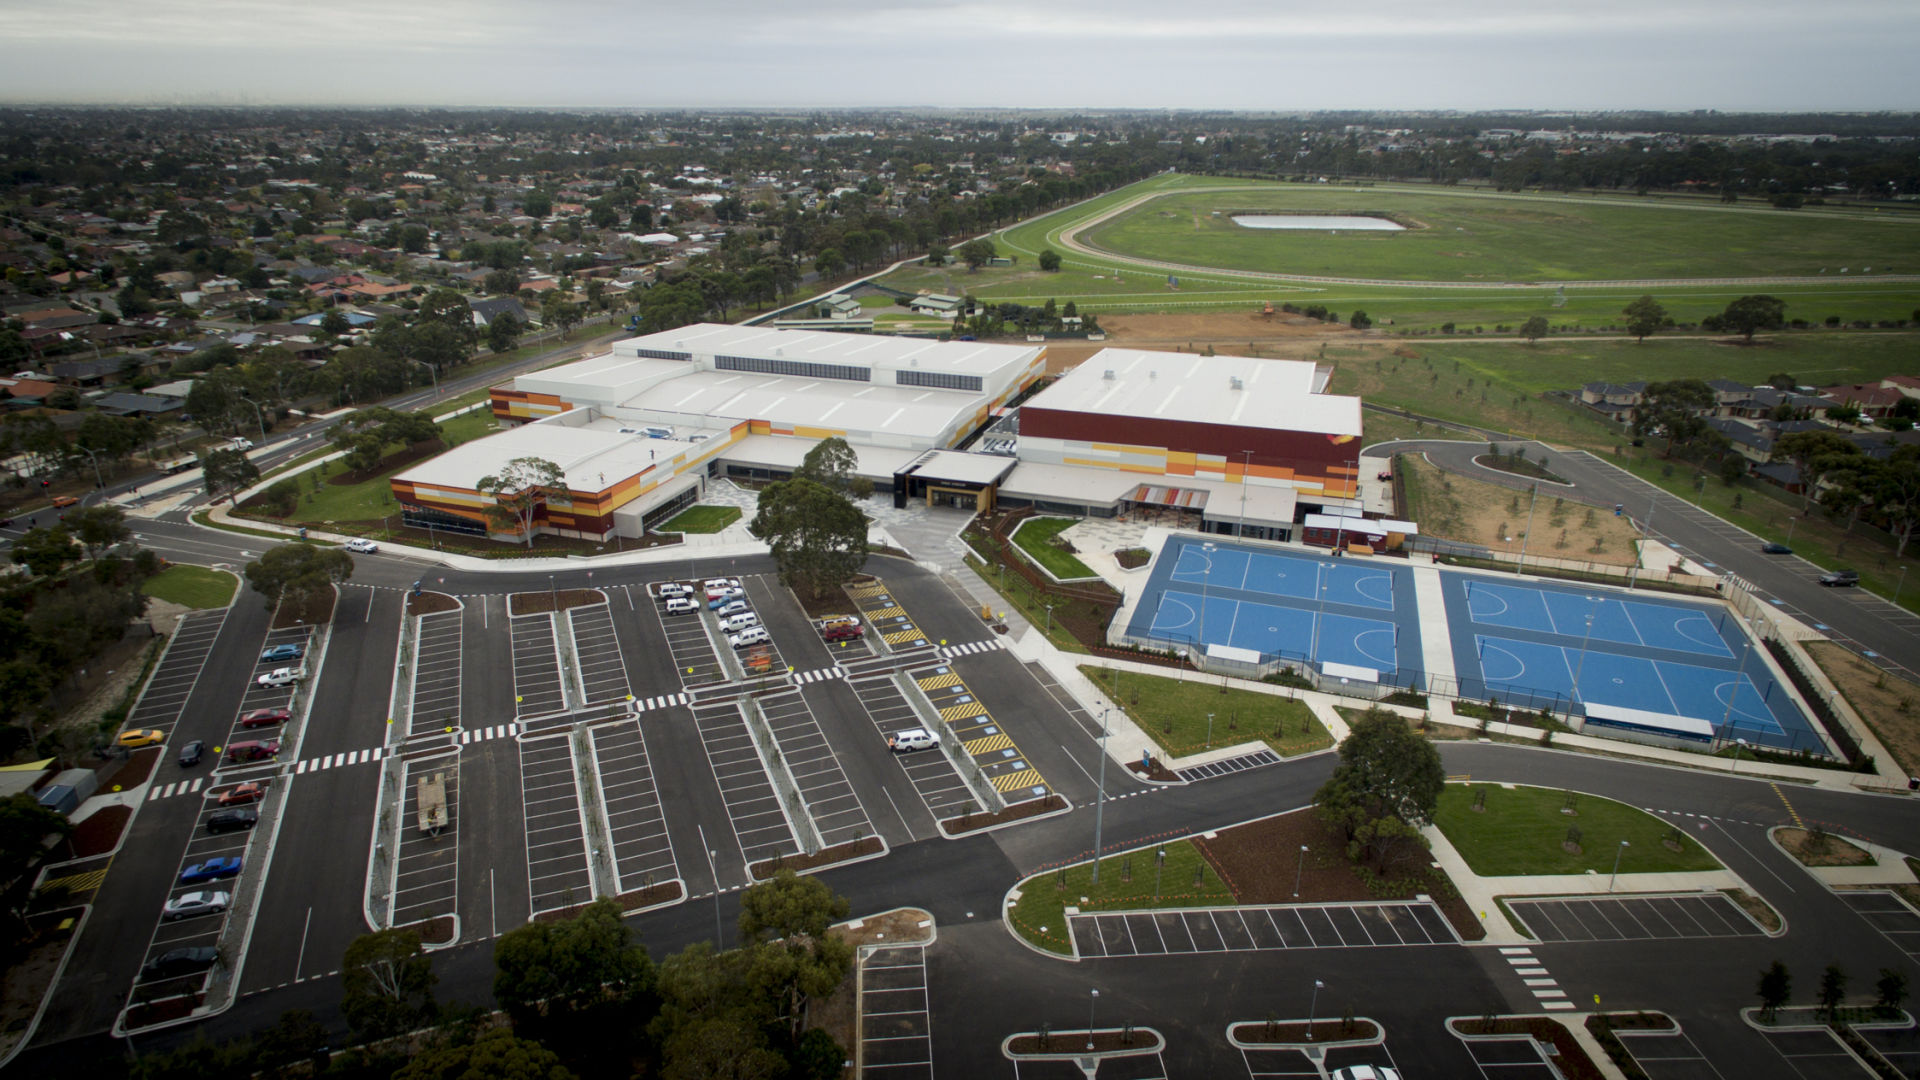 Werribee Sports and Fitness Centre